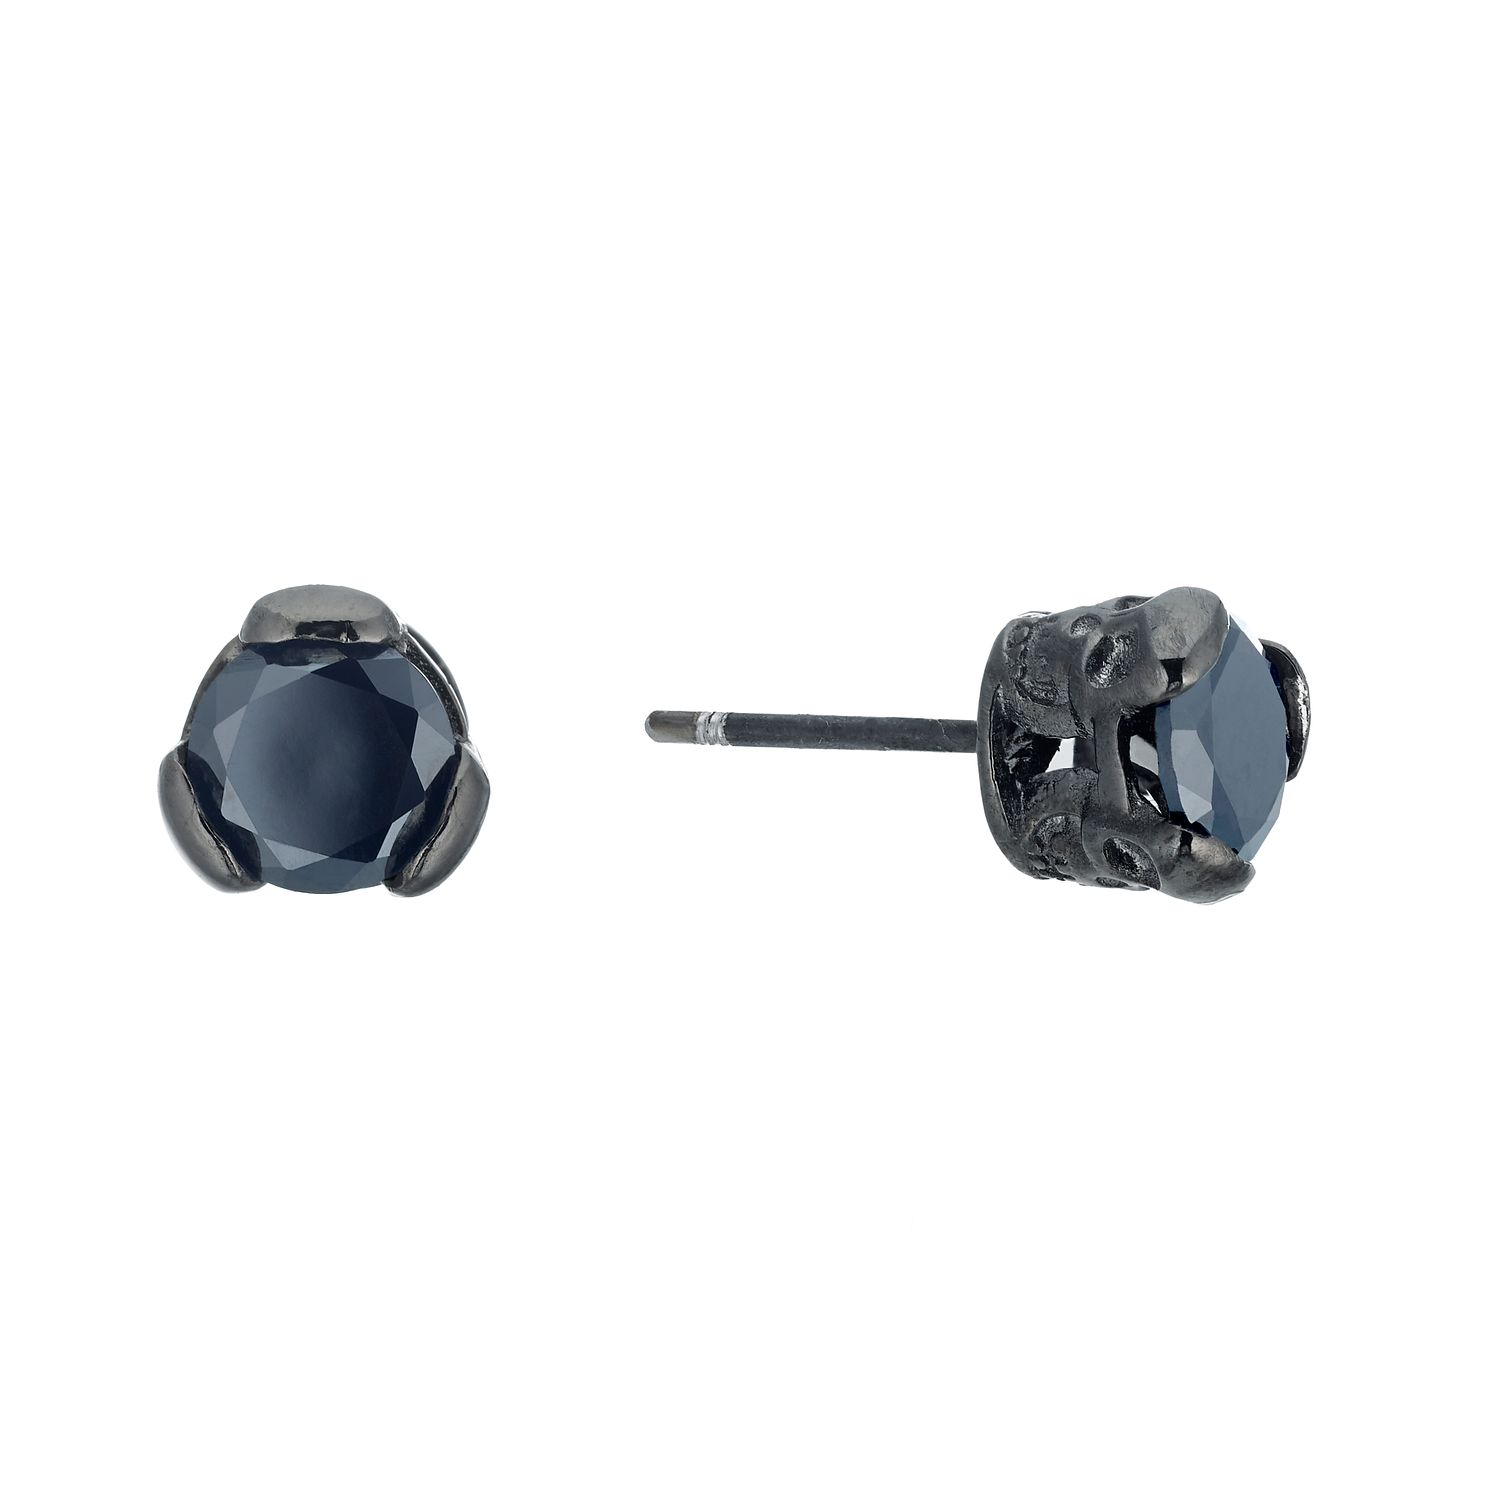 Black Stainless Steel & Black Cubic Zirconia Stud Earrings - Product number 3271447